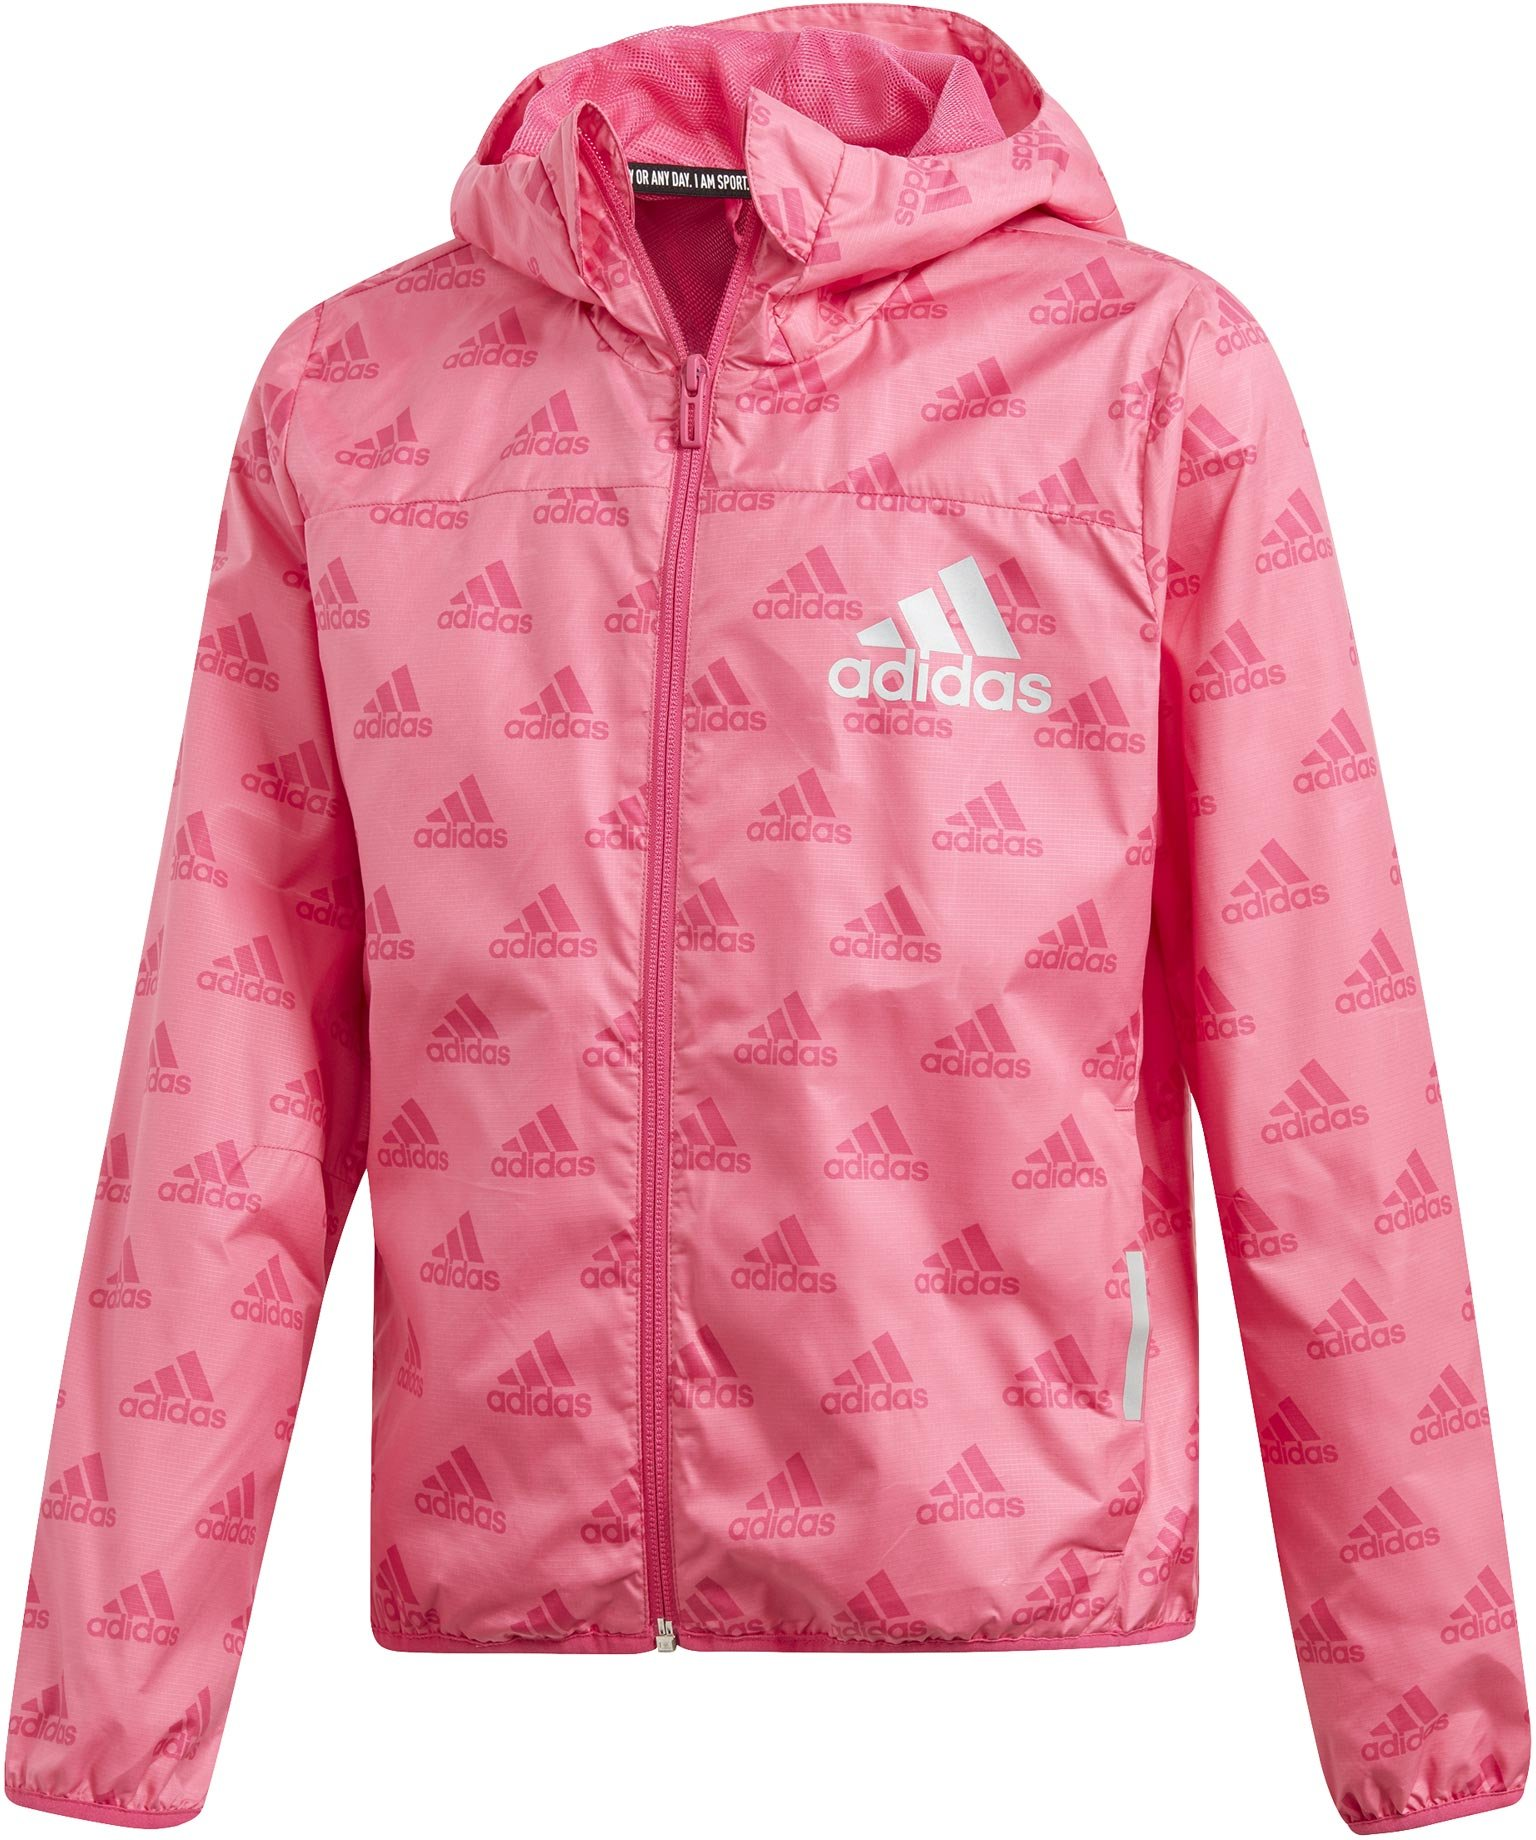 adidas Youth Girls Must Haves Wind Jacket 164